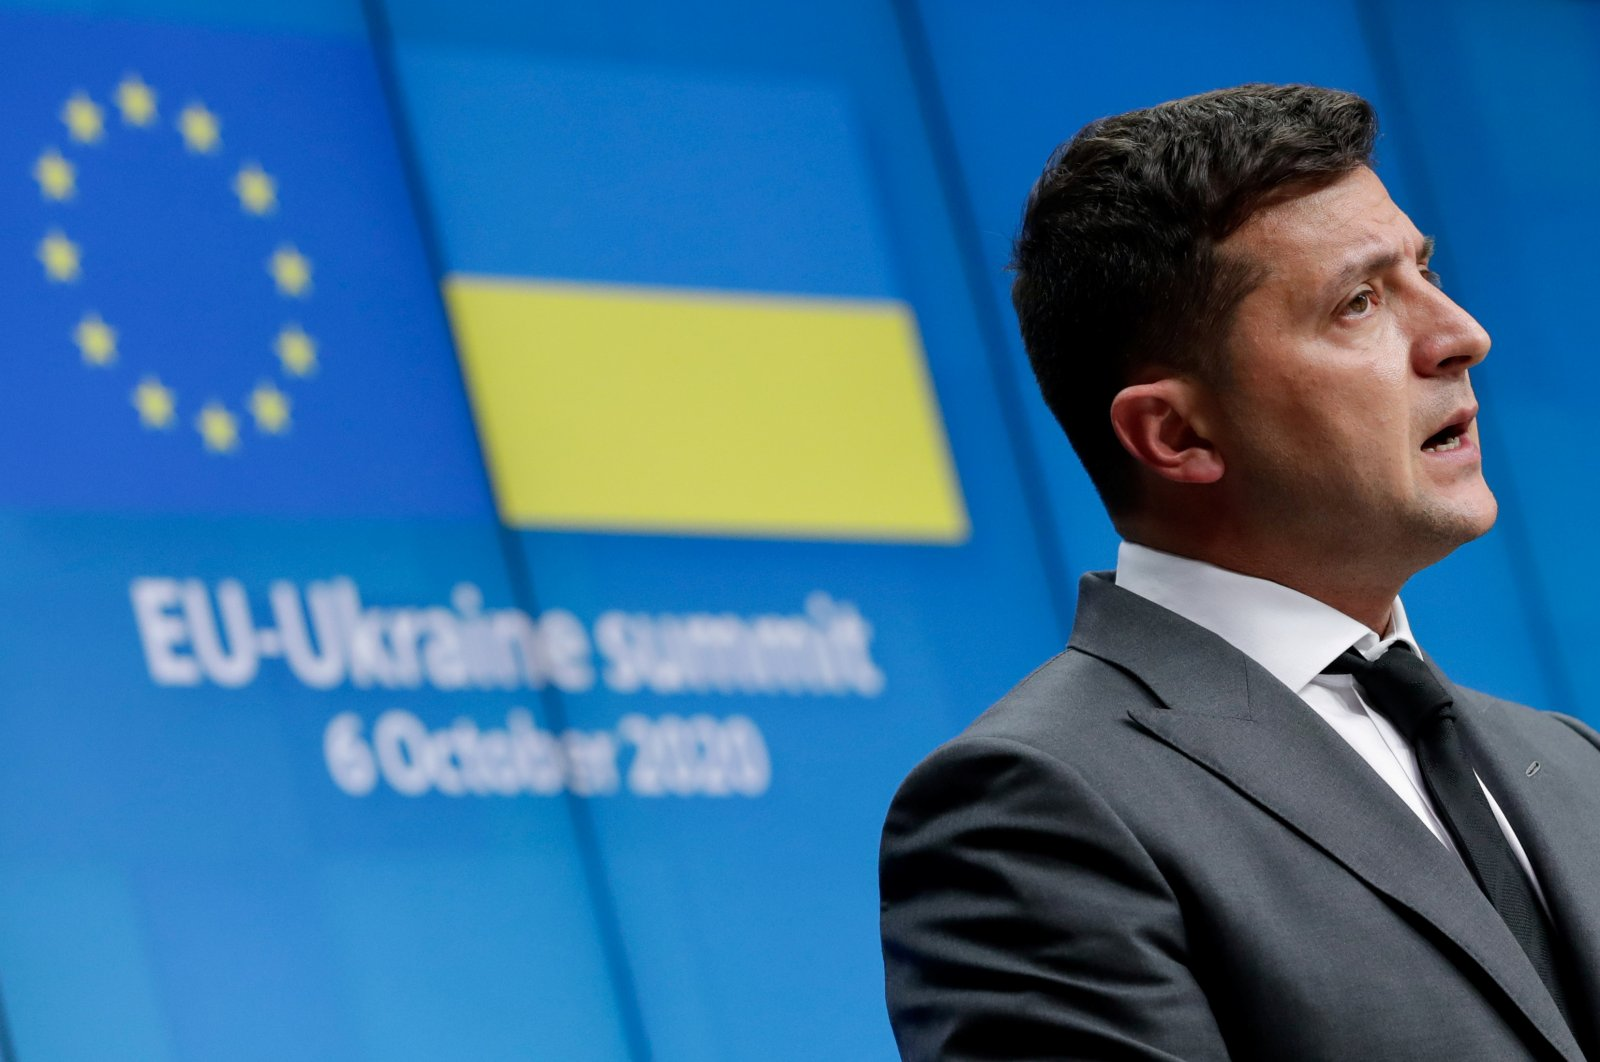 Ukrainian President Volodymyr Zelenskiy gives a press conference at the end of an EU-Ukraine Summit at the European Council in Brussels, Belgium, Oct. 6, 2020. (Reuters Photo)